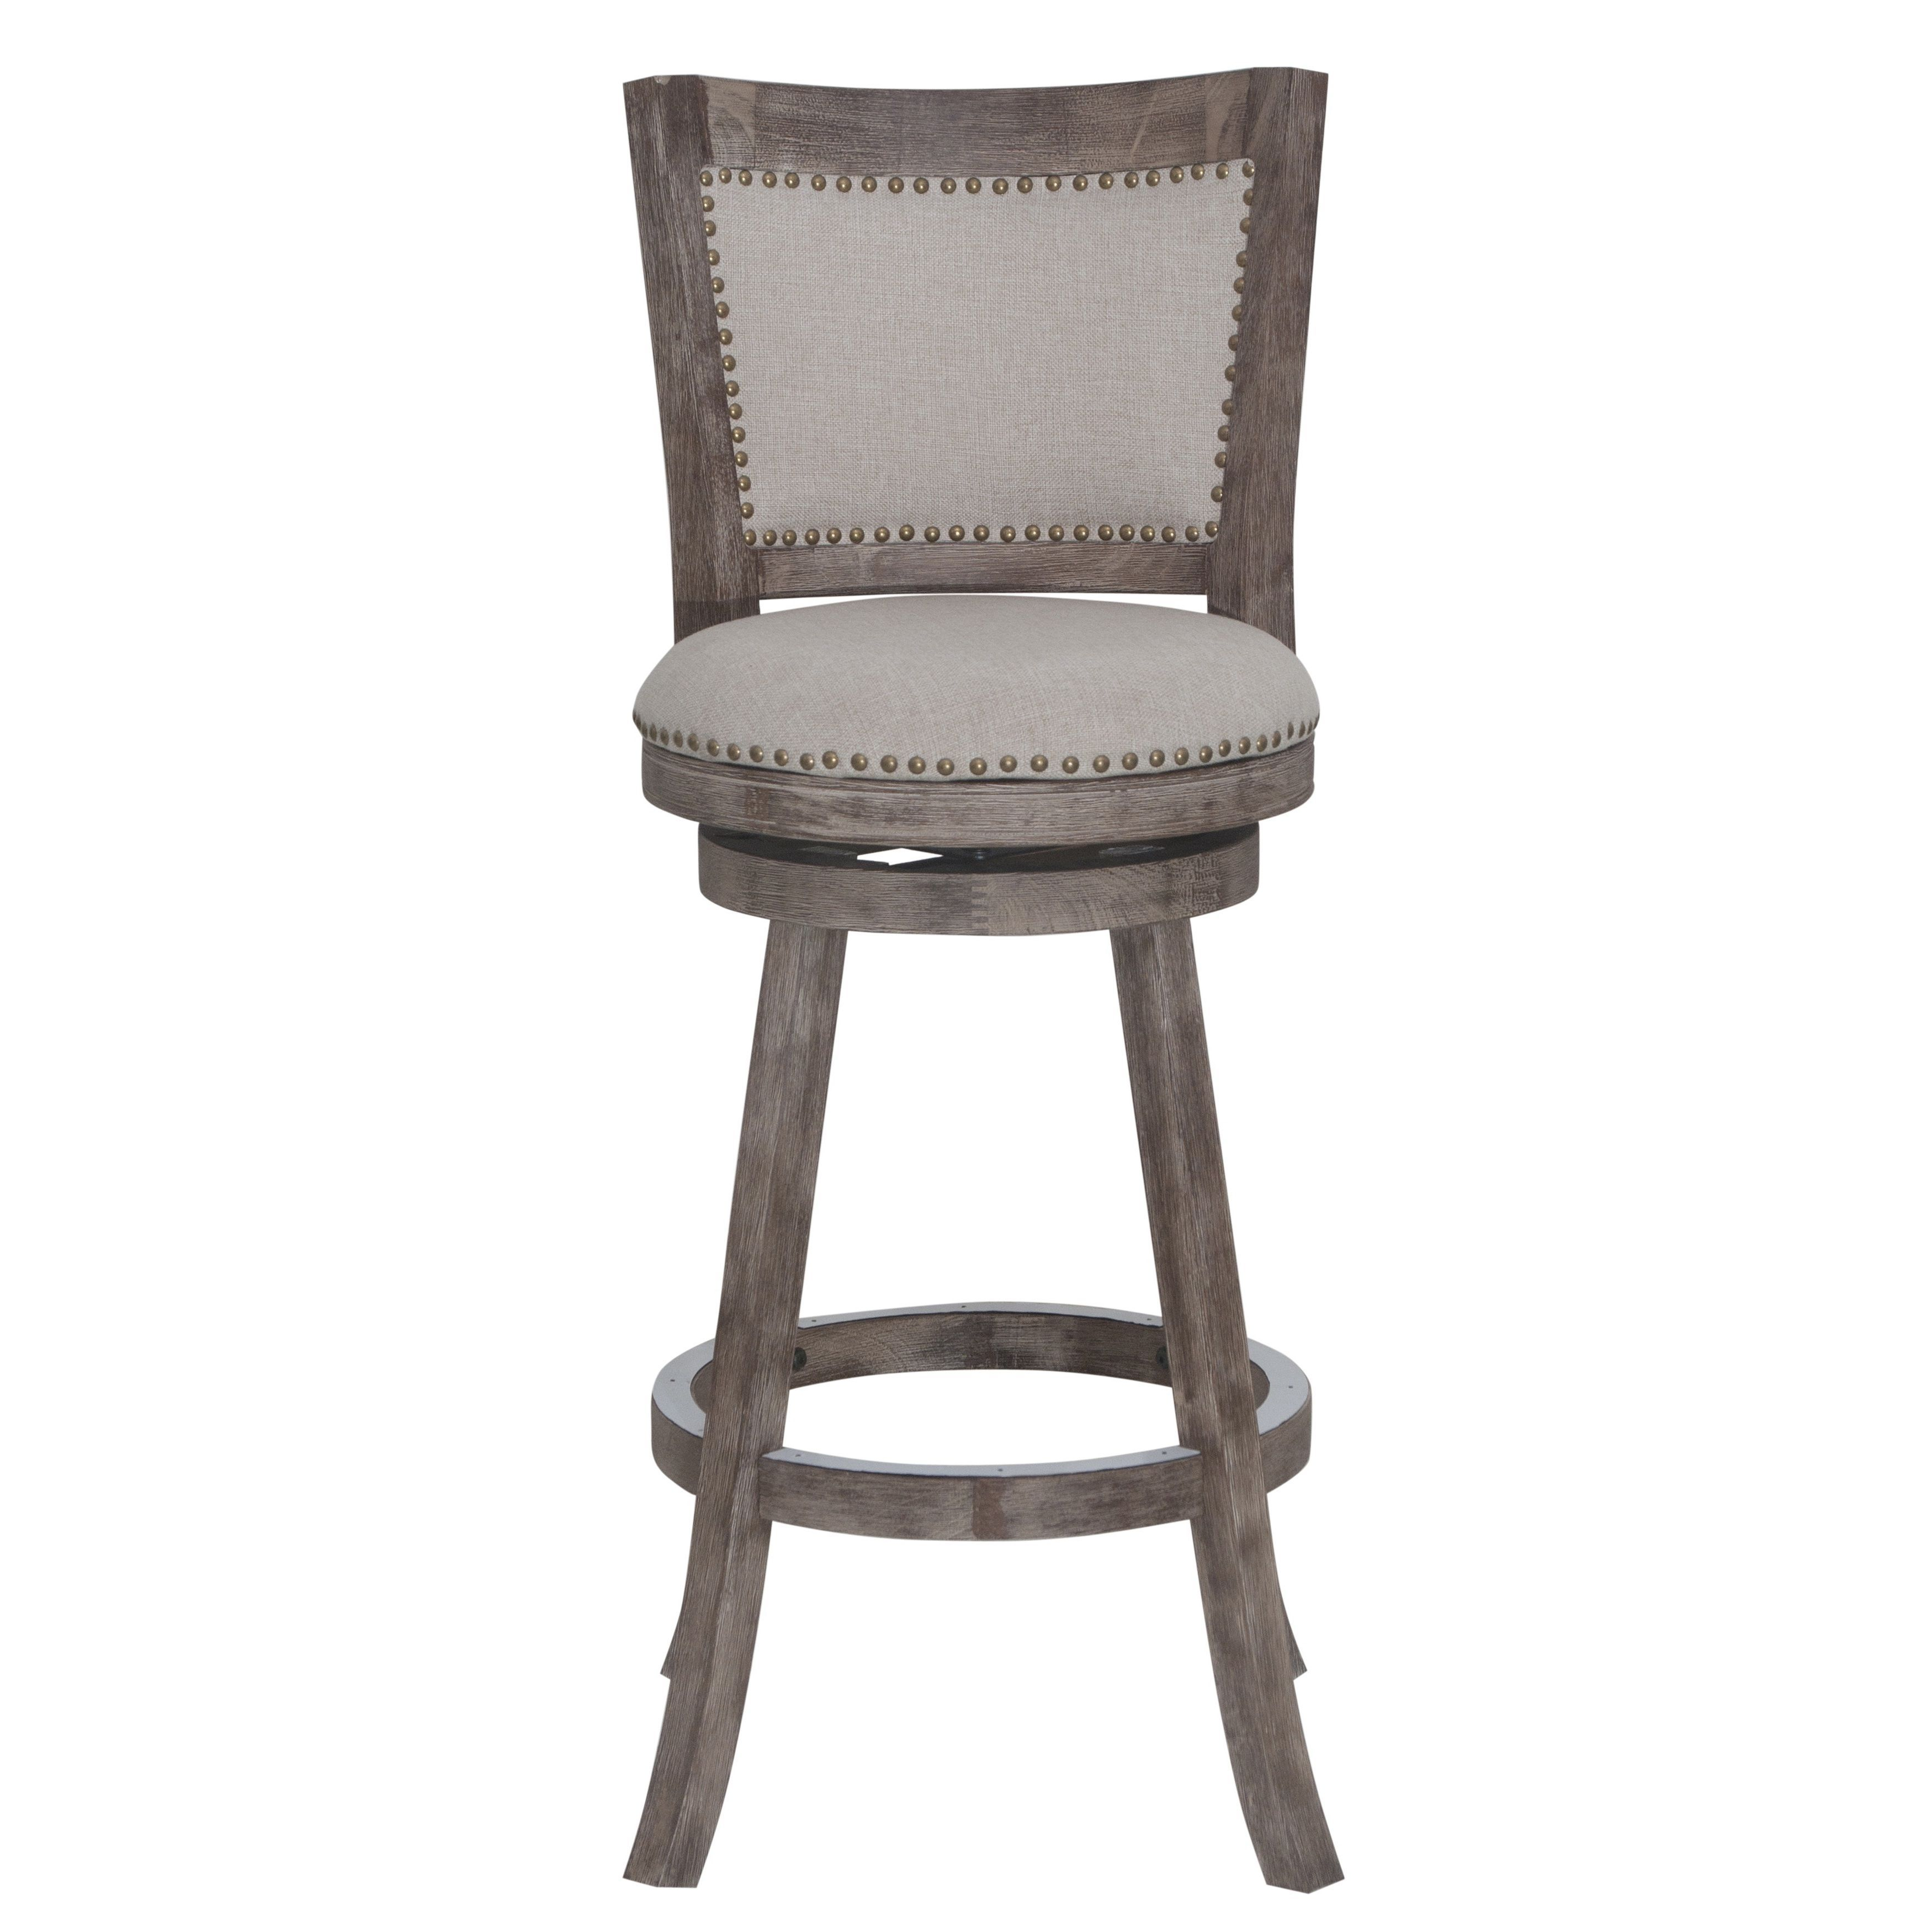 The Gray Barn Parker 29 Inch Swivel Bar Stool Distressed